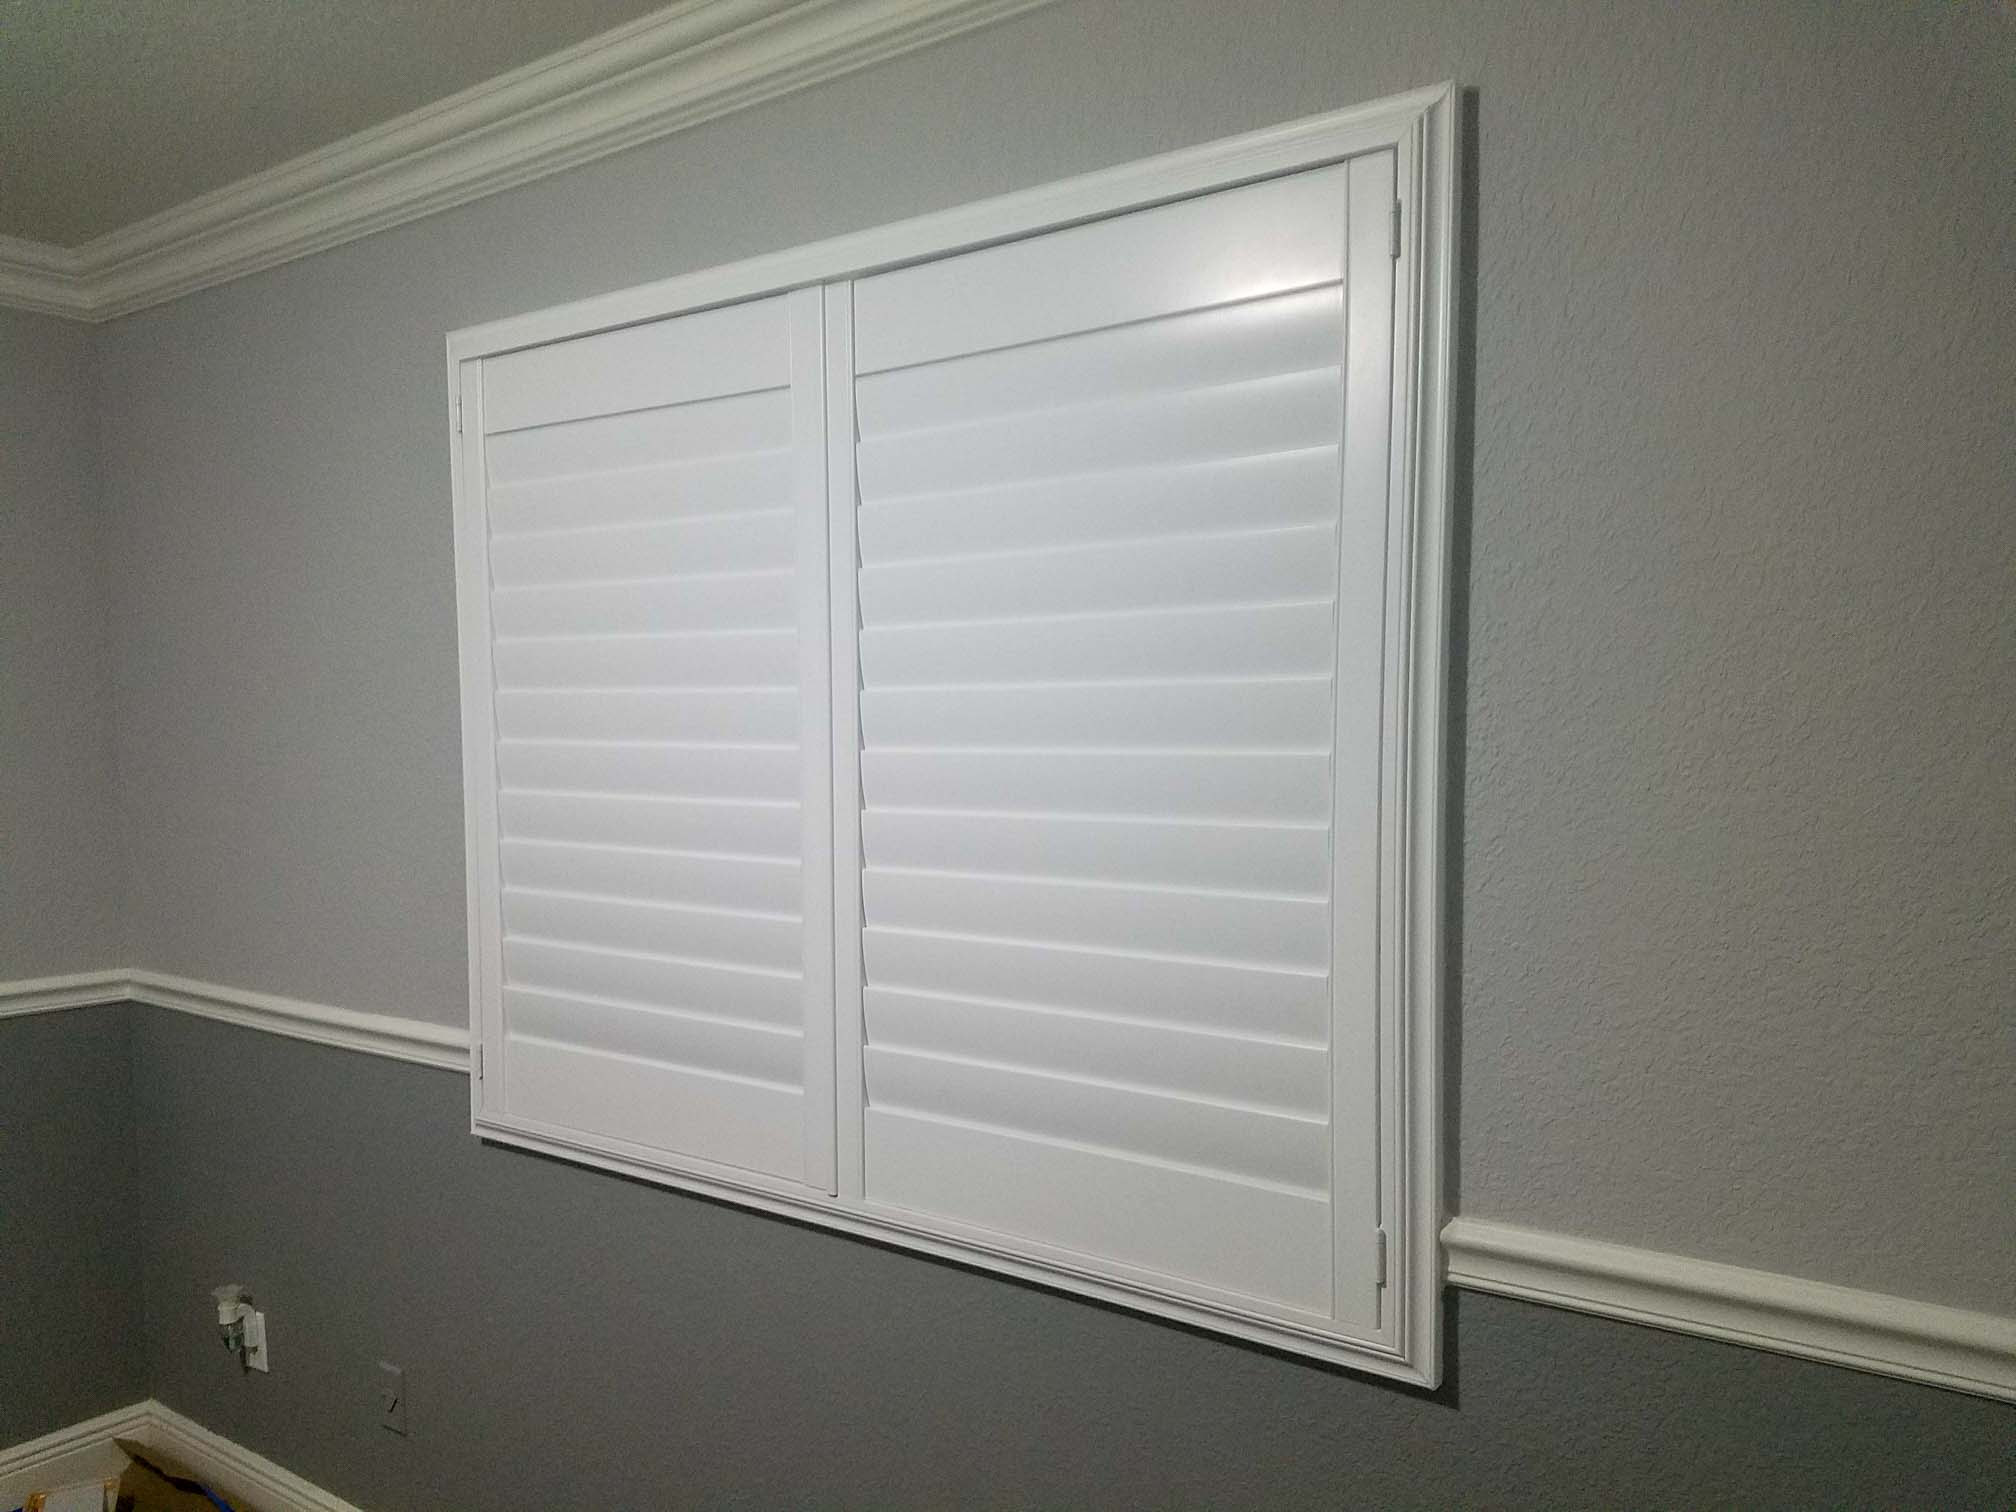 plantation shutters gallery PLANTATION SHUTTERS GALLERY 20180304 204307